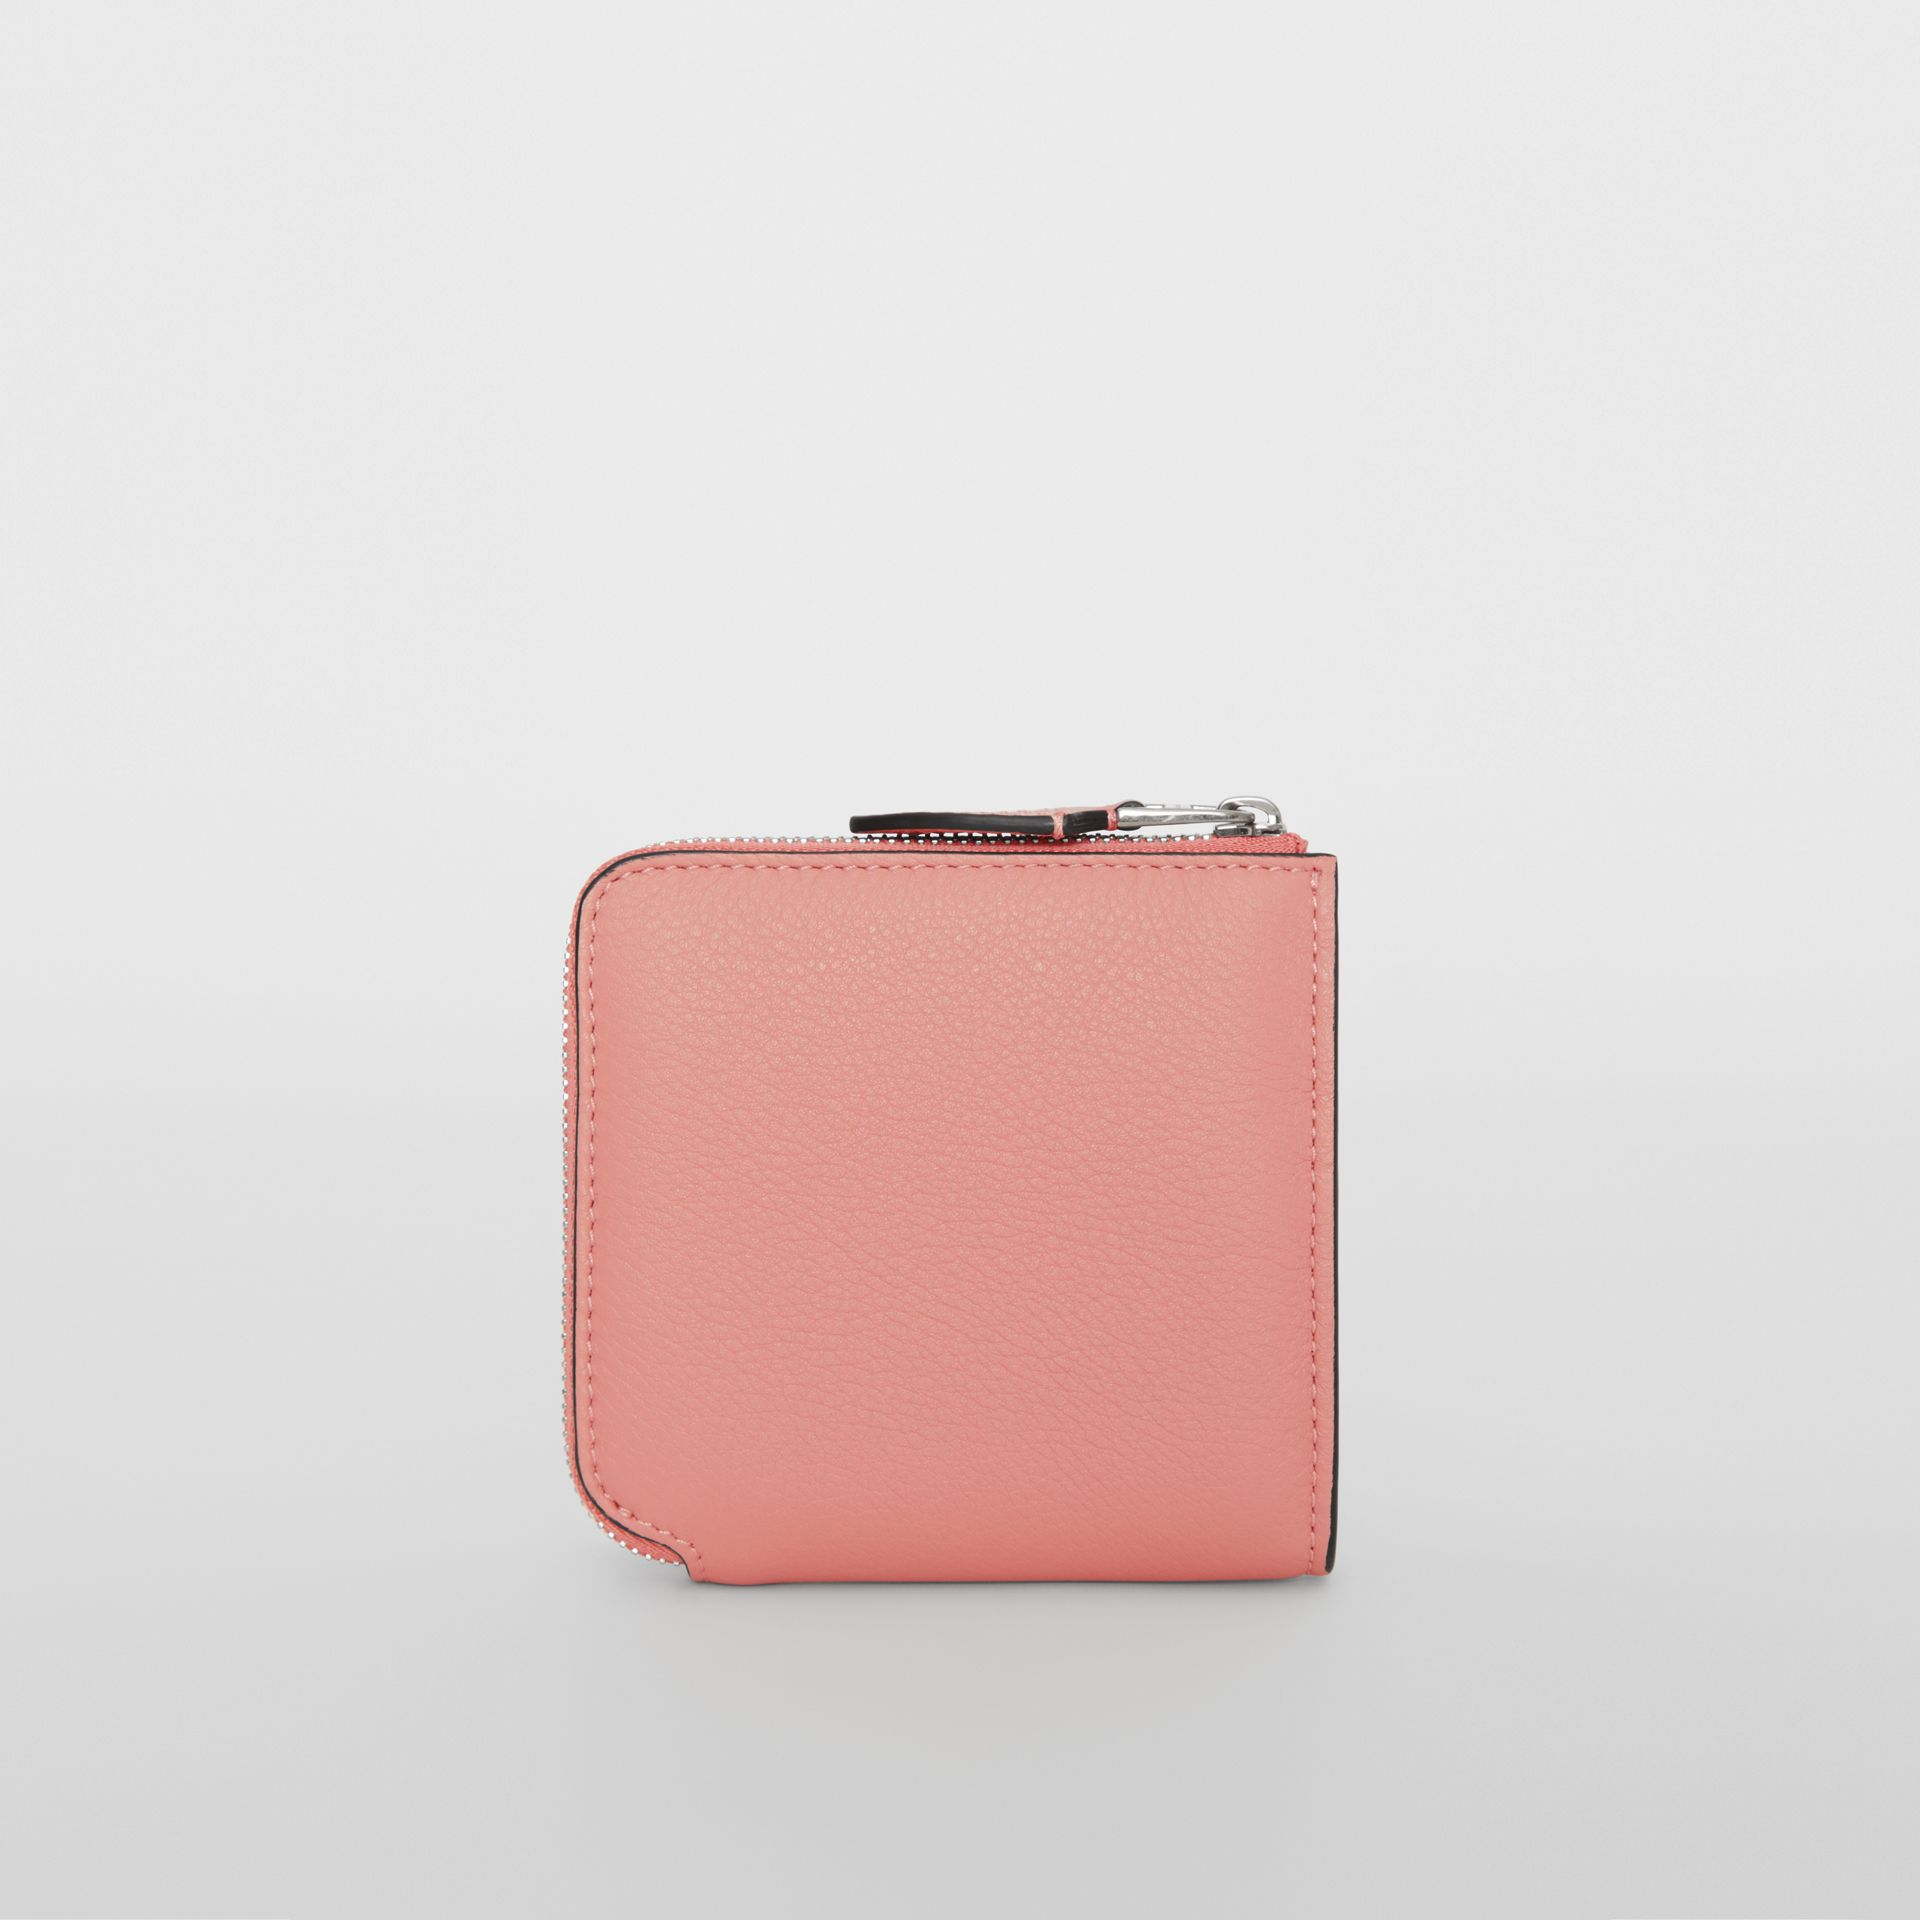 Grainy Leather Square Ziparound Wallet in Dusty Rose - Women | Burberry Singapore - gallery image 5